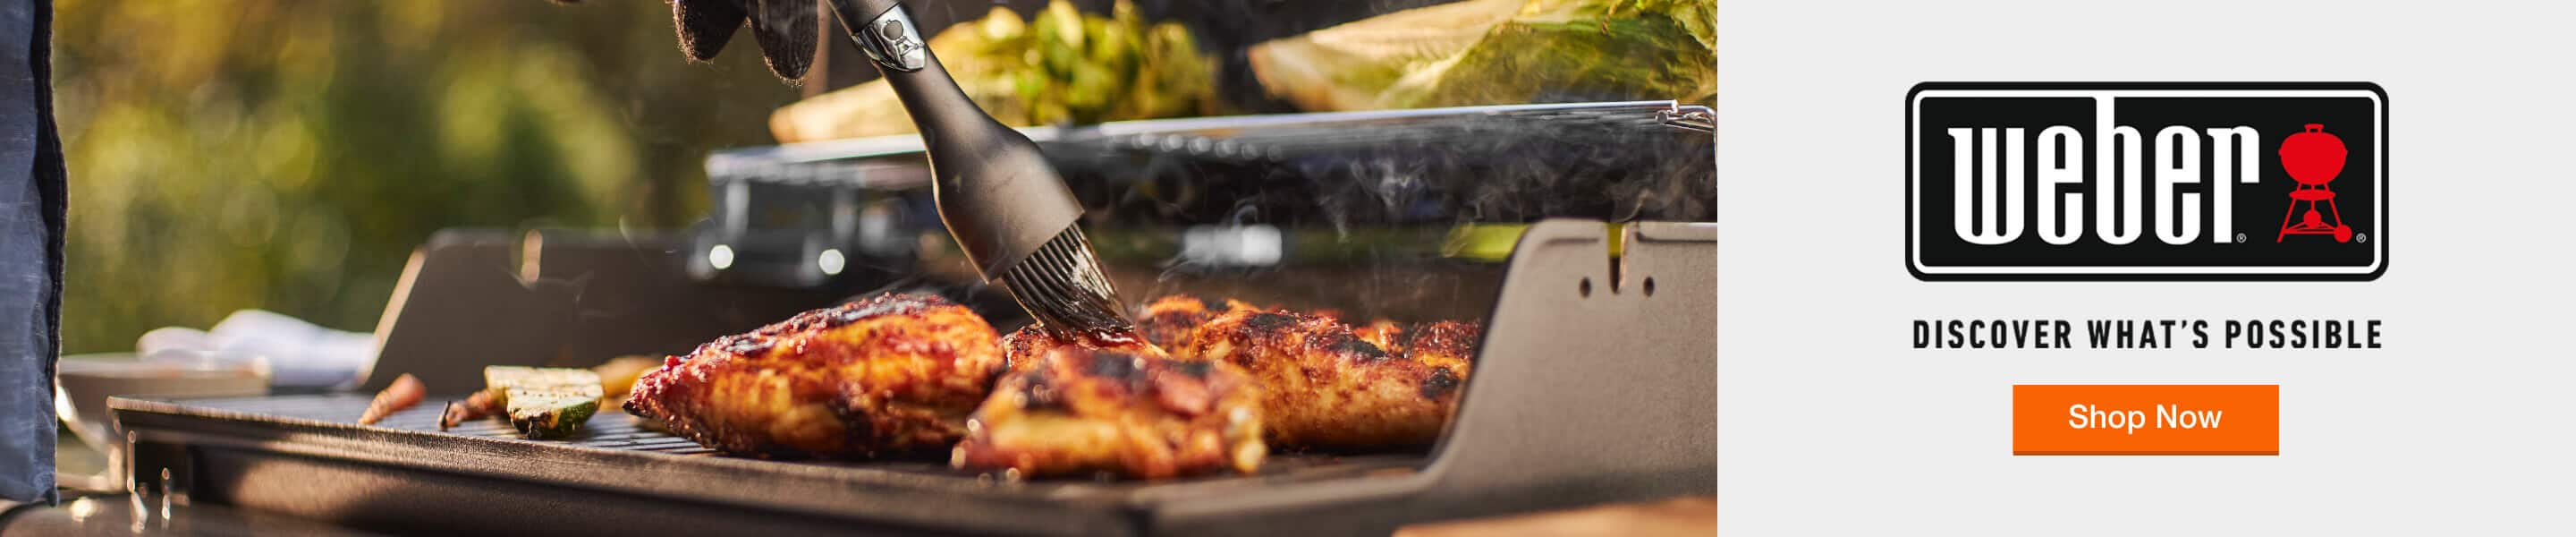 Weber - Discover What's Possible. Shop Now